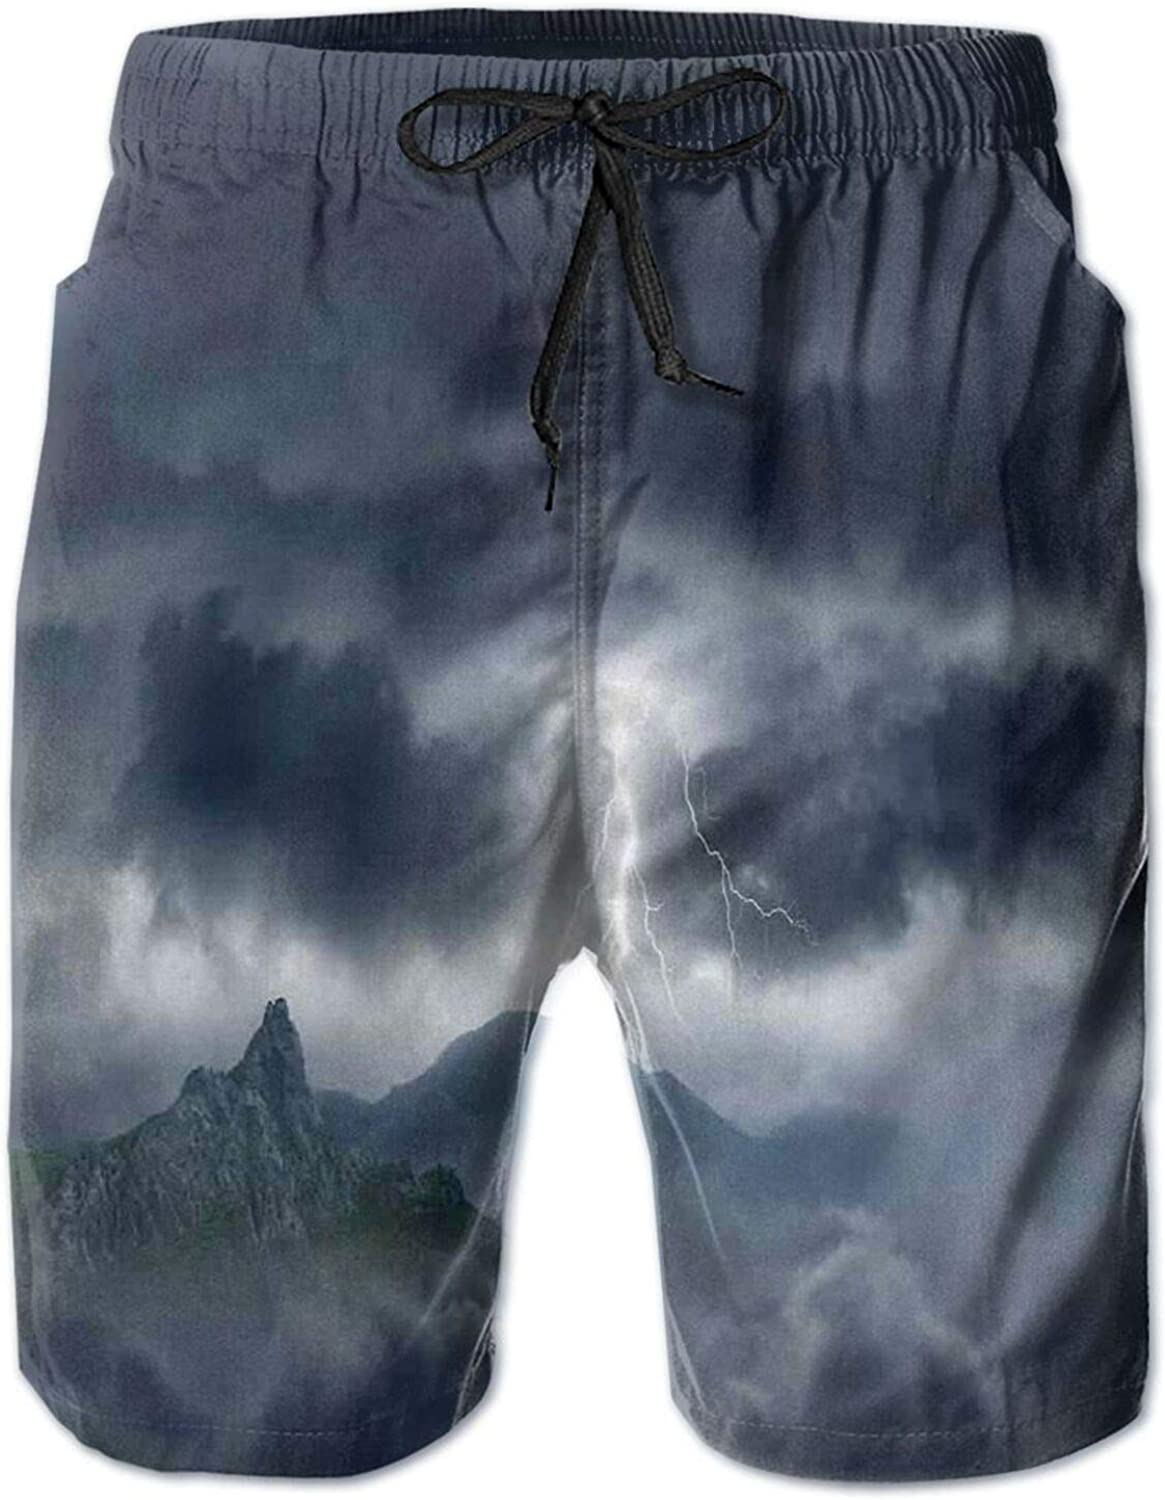 Flash in Dark Stormy Sky Over Mountains Like Fictional Fantastic Powerful Nature Image Mens Swim Shorts Casual Workout Short Pants Drawstring Beach Shorts,L